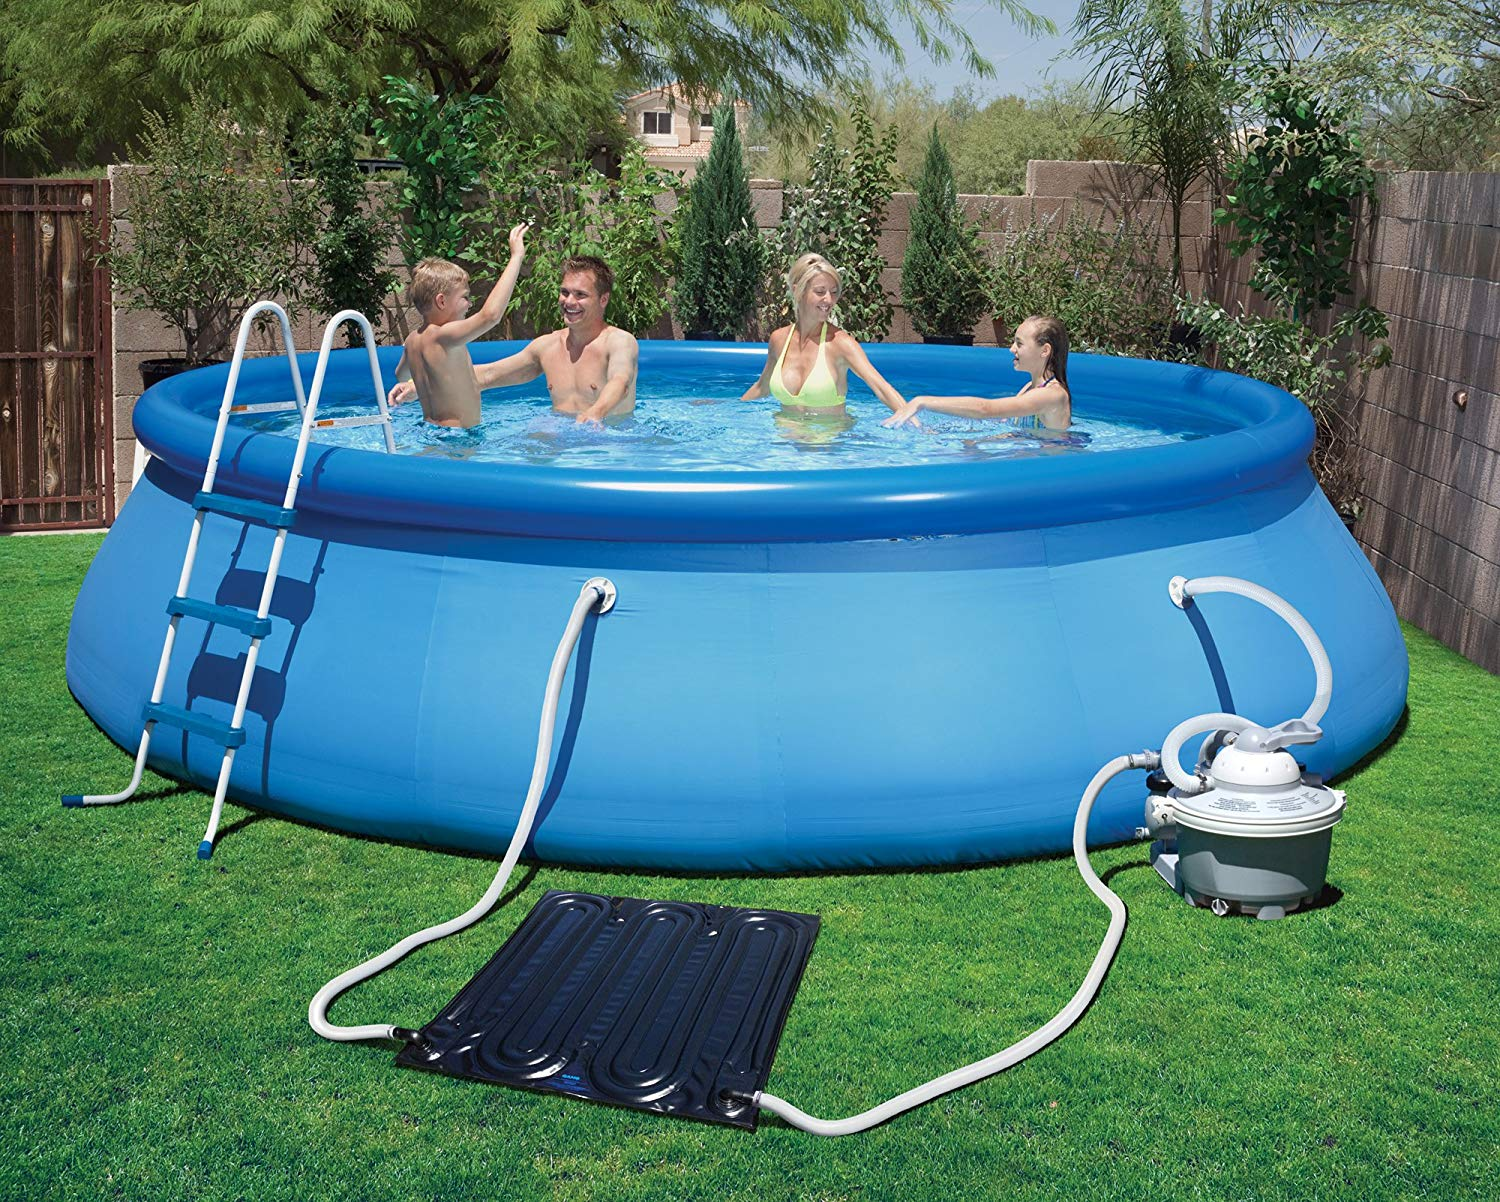 above ground pool amazon.com : blue wave ns6012 solarpro ez mat solar heater for above VVITKLF